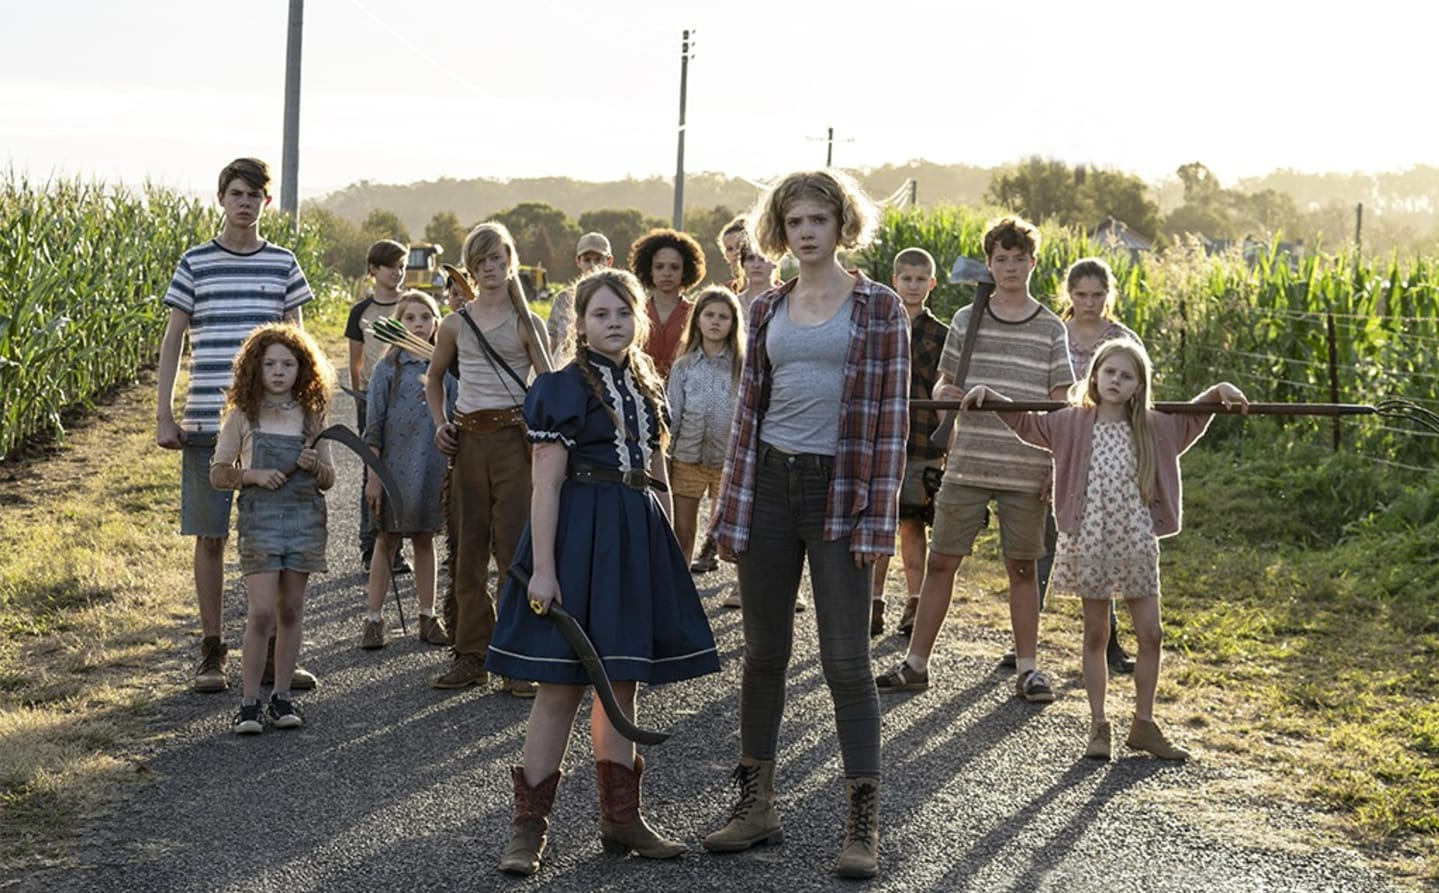 New 'Children of the Corn' Movie Gets First Image, Poster Art and Very  Limited Theatrical Release - Bloody Disgusting